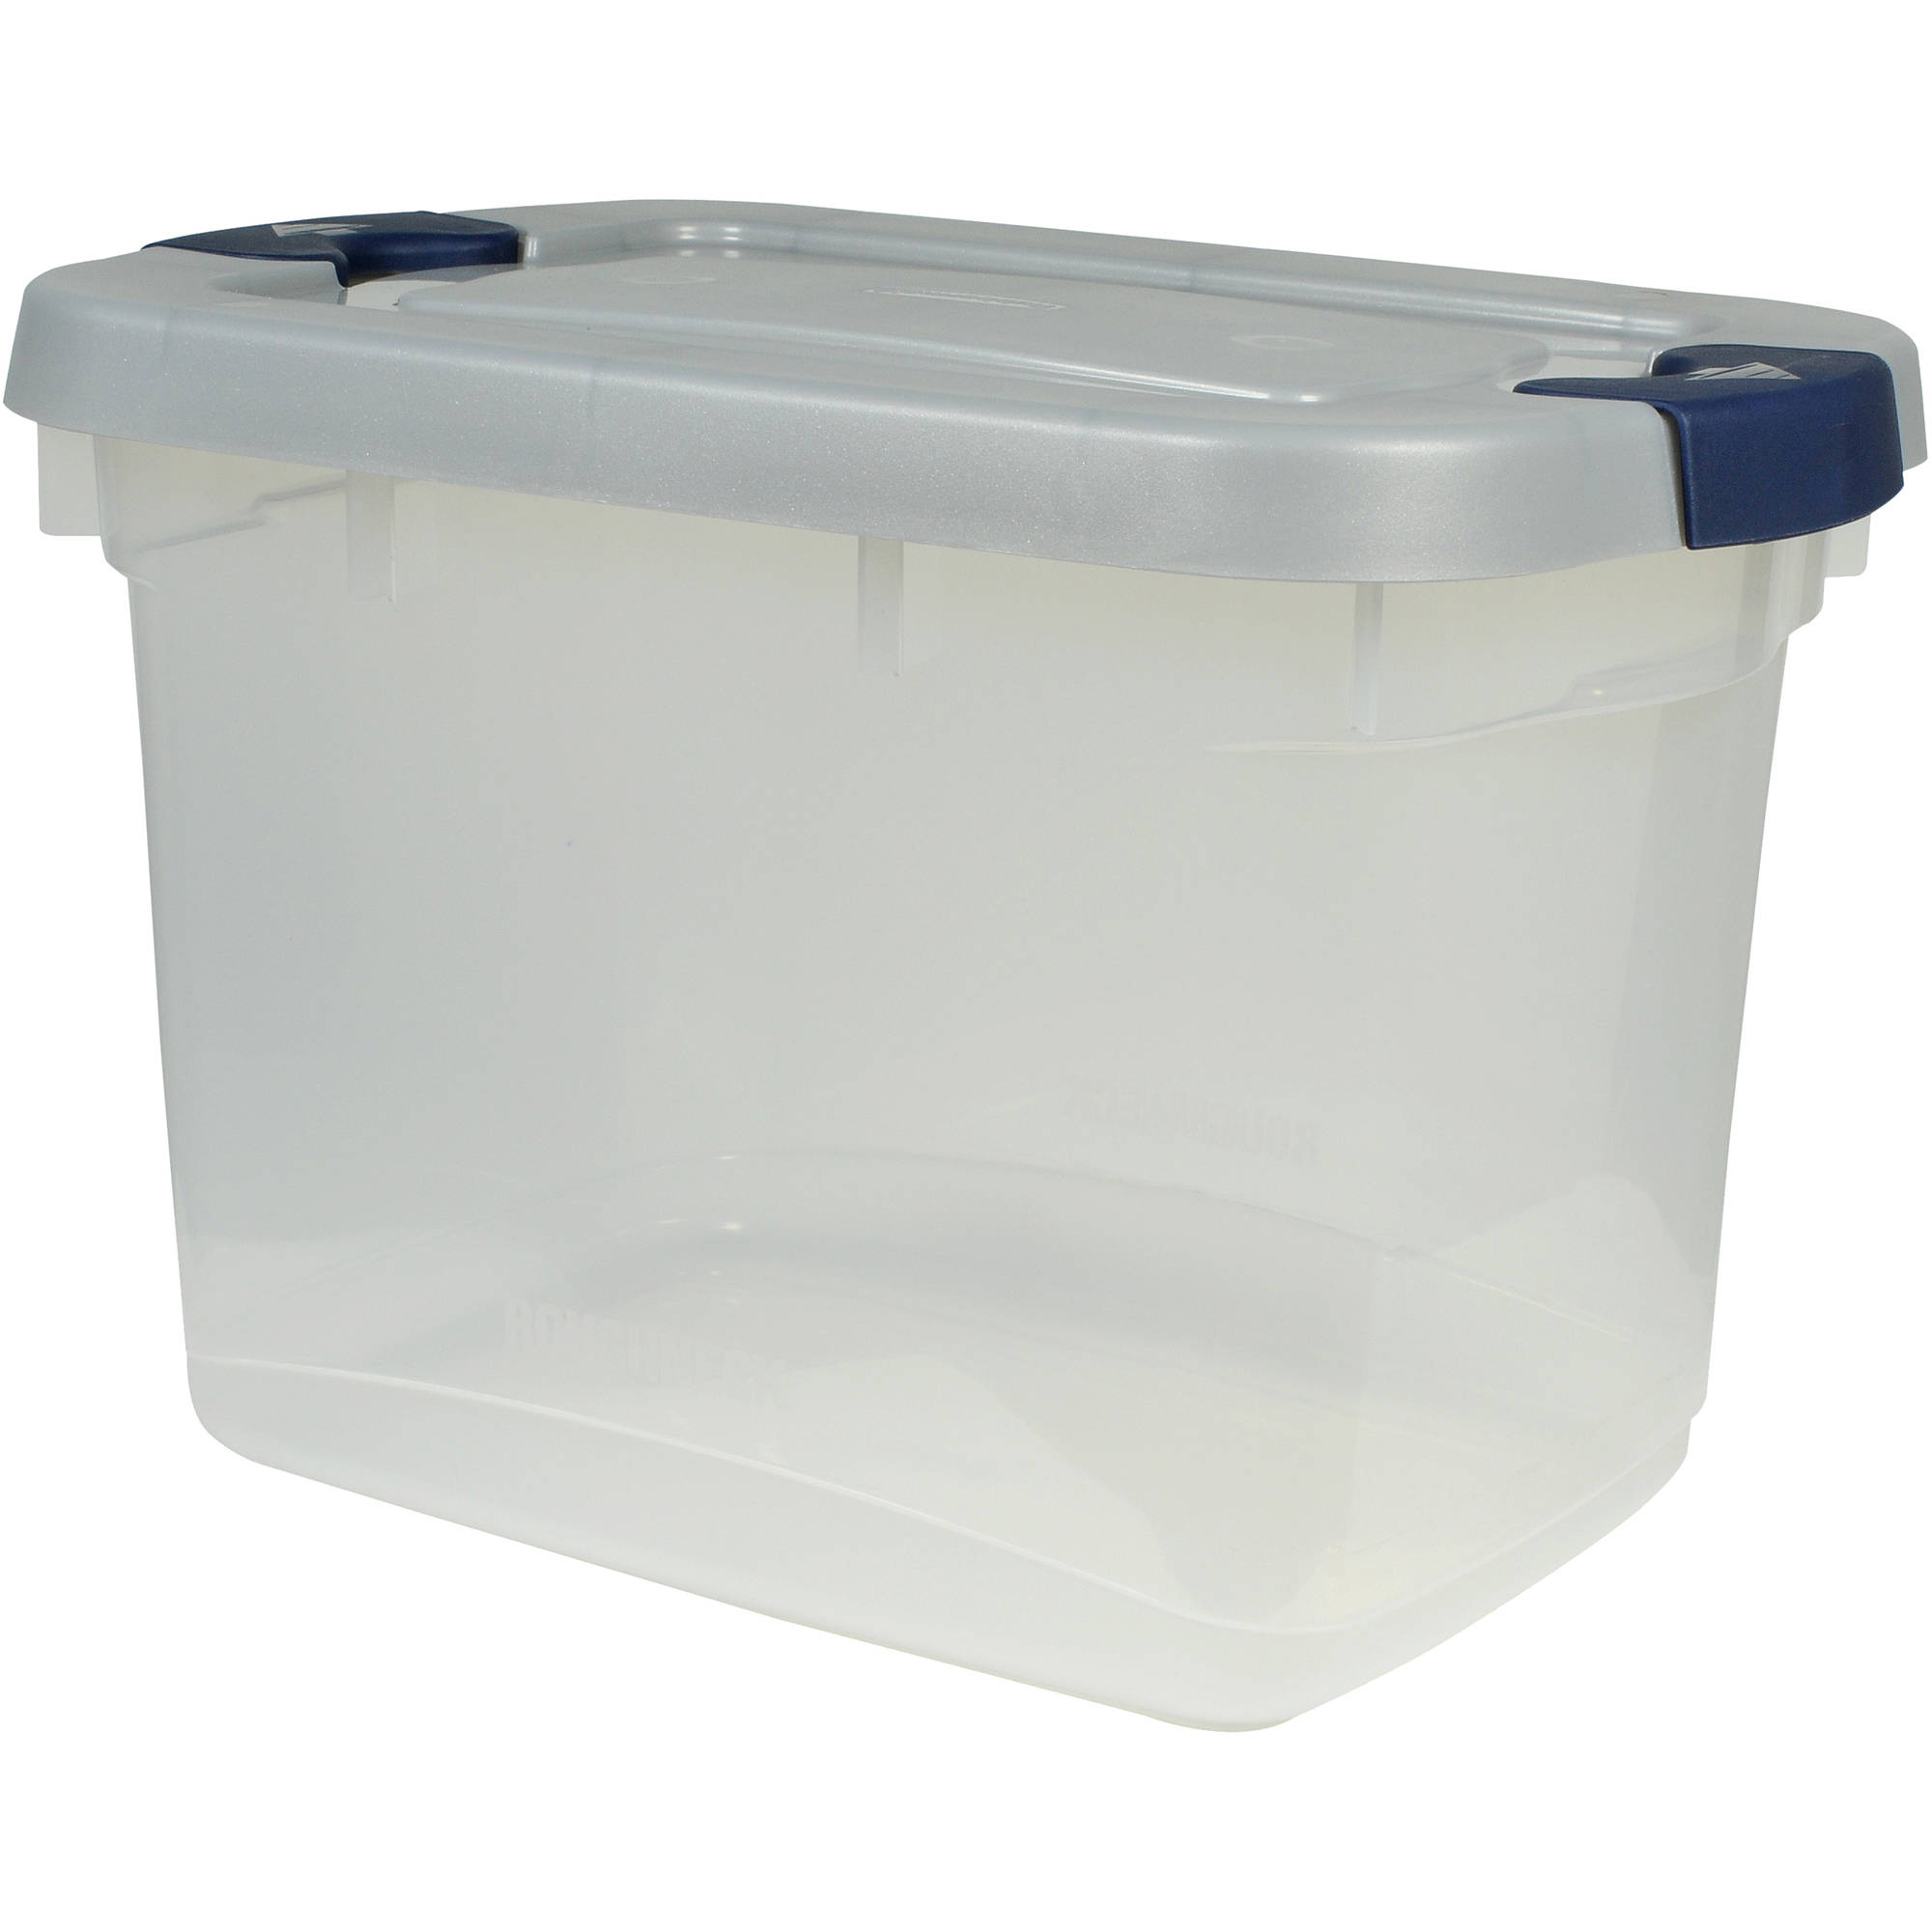 Amazing Rubbermaid Roughneck Clear Storage Tote Bins, 19 Qt (4.75 Gal), Clear With